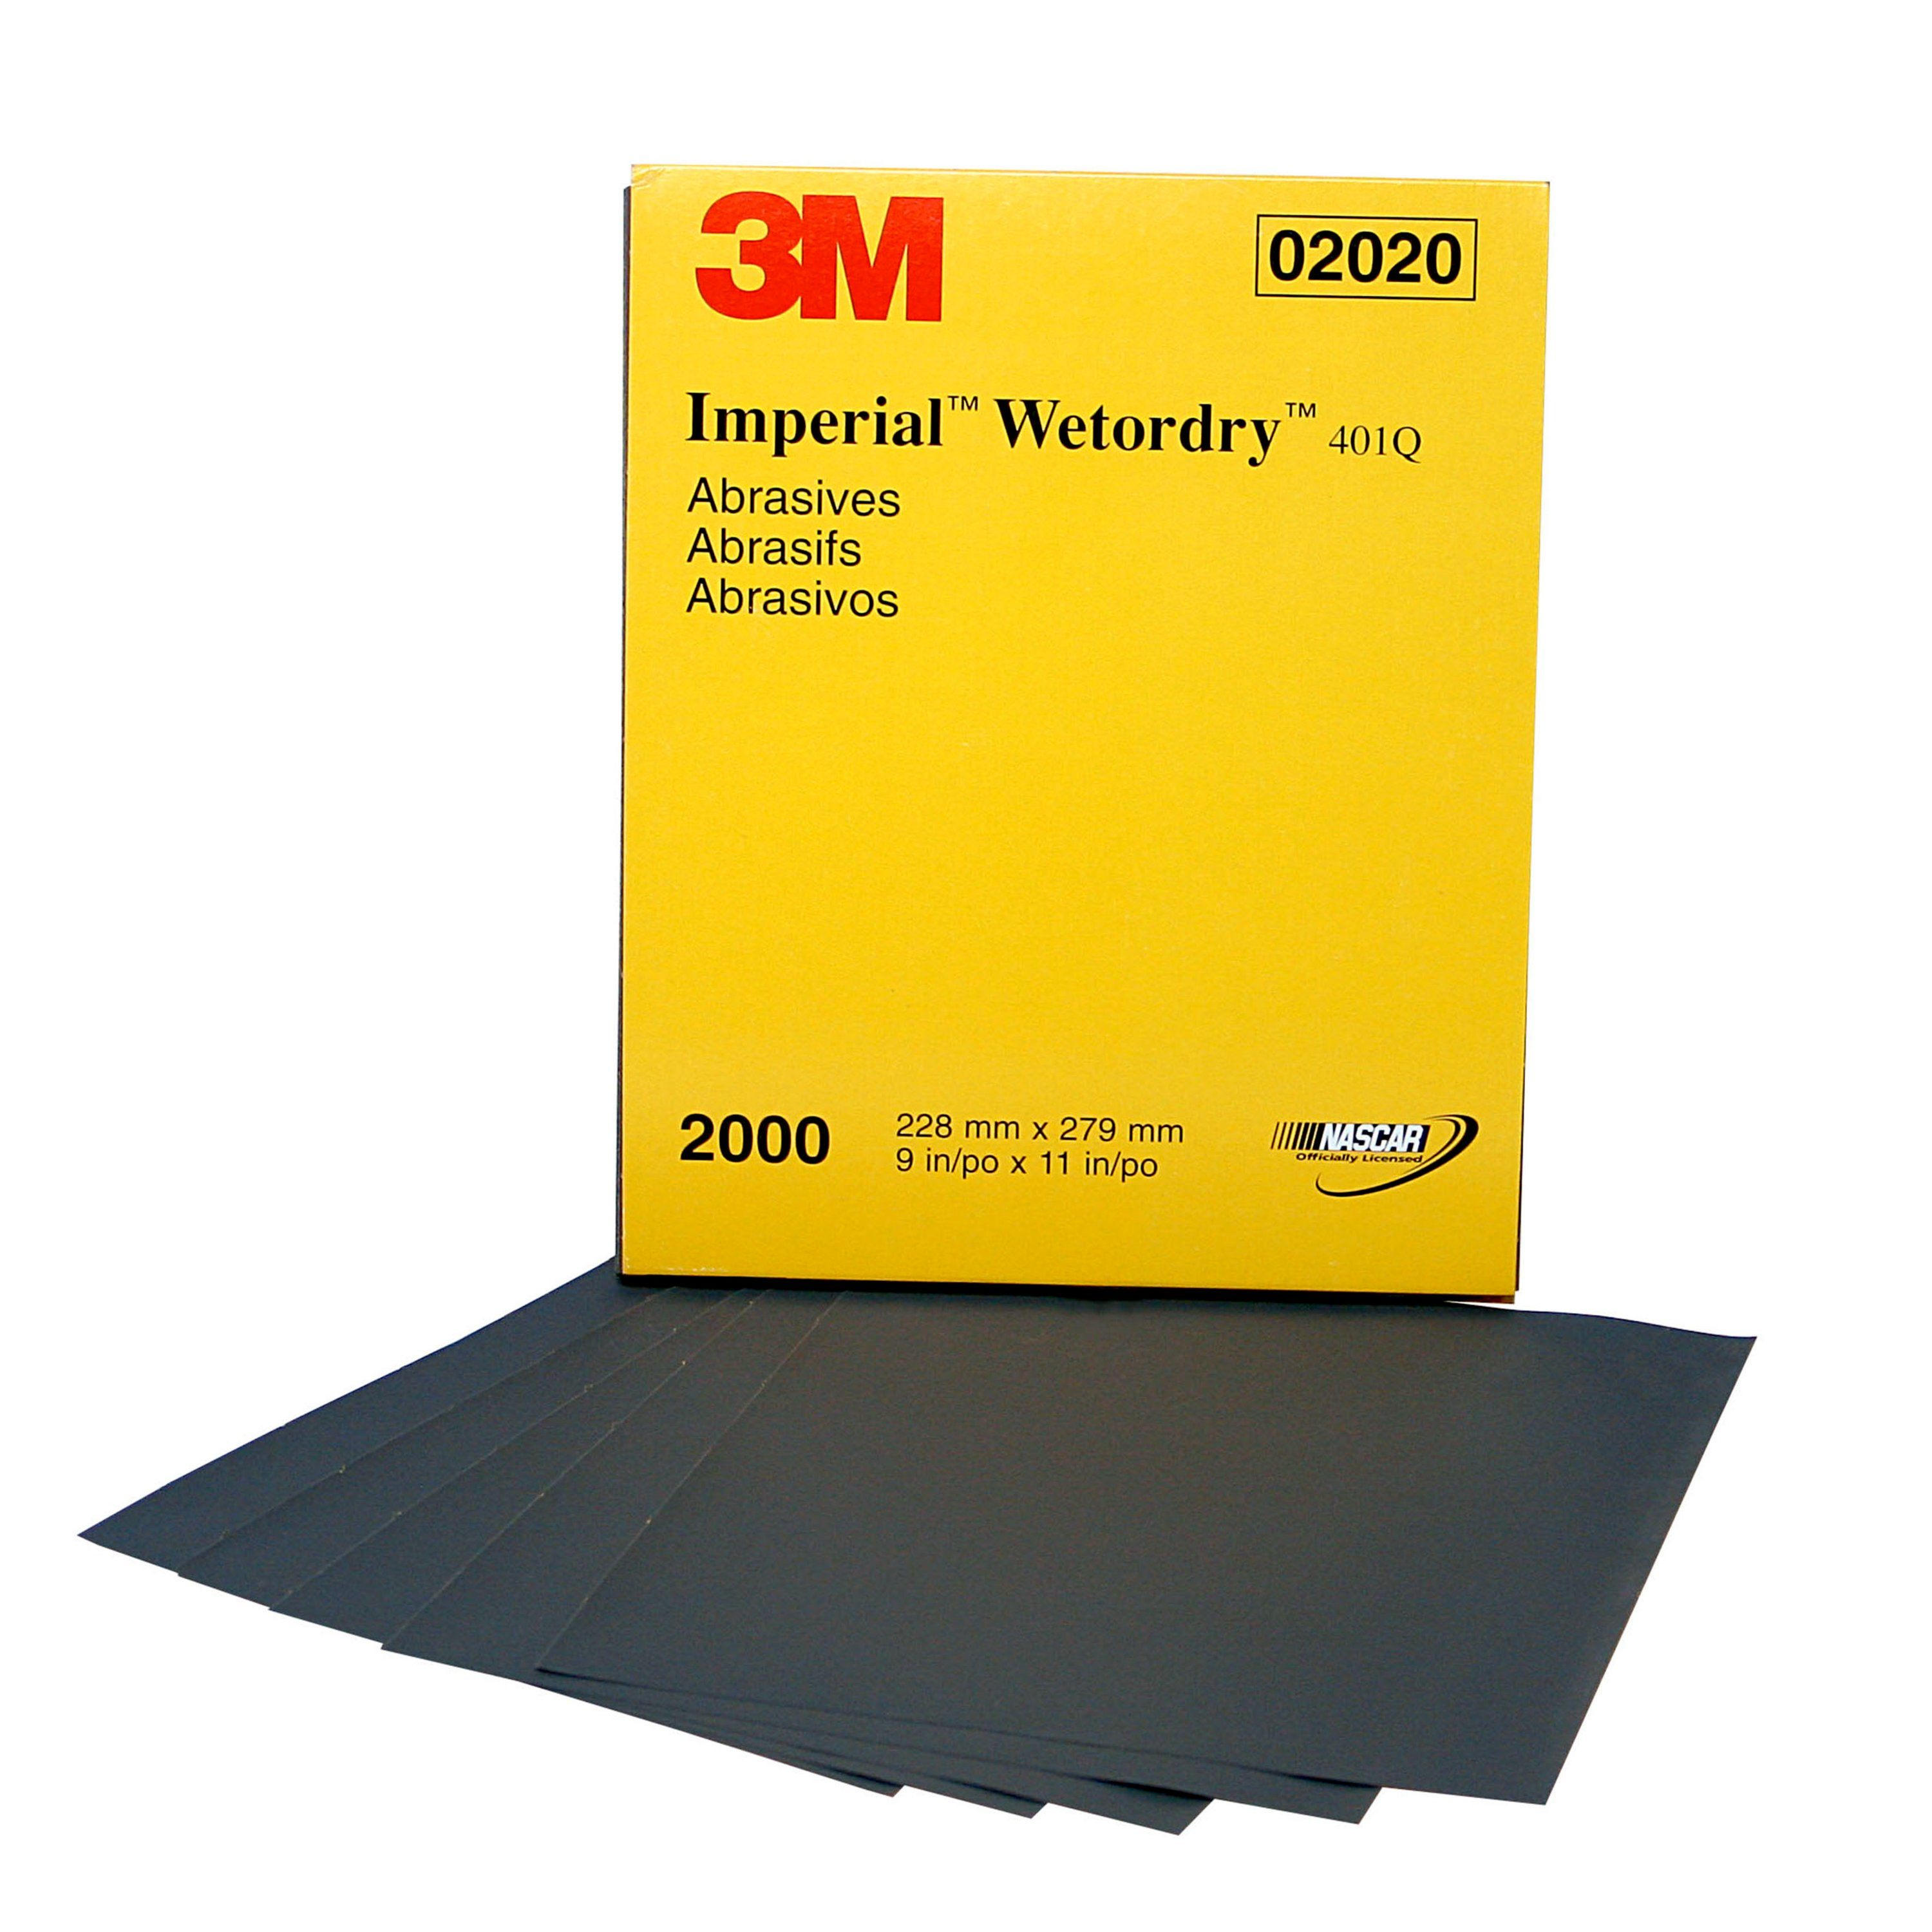 3M 02020 Imperial Wetordry 9 x 11 2000A Grit Sheet